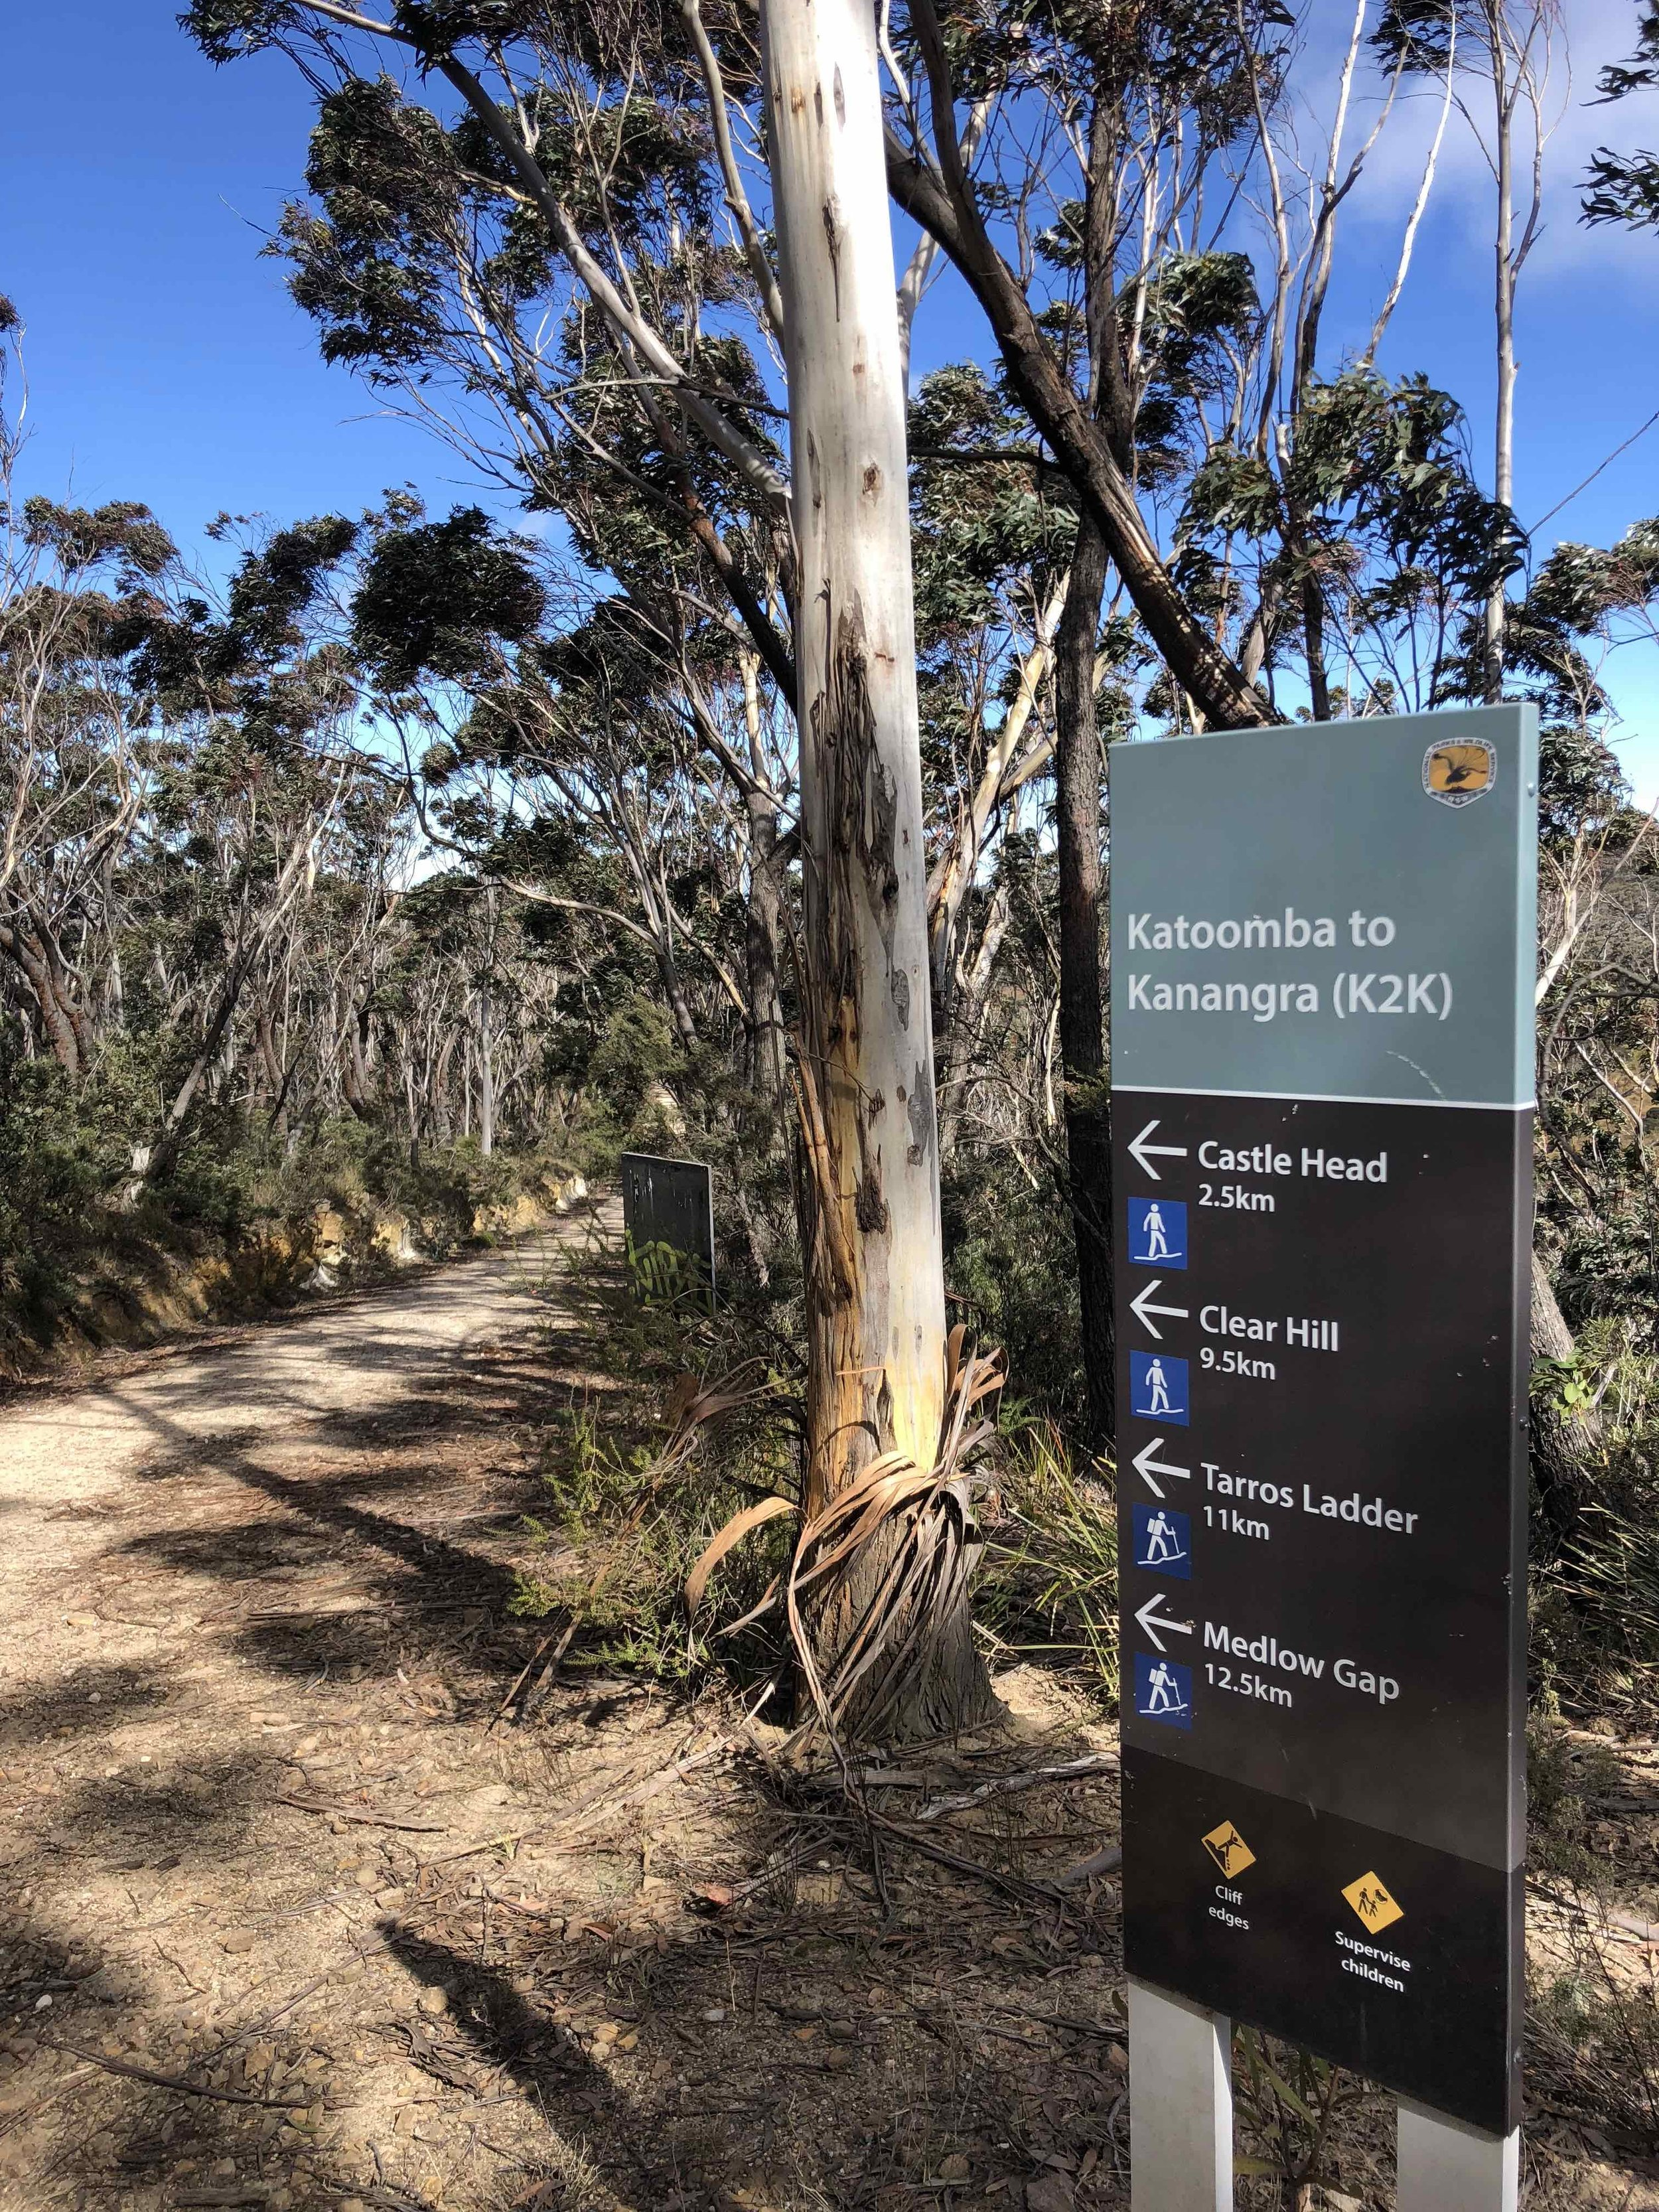 Lookout for the NSW Parks track signs on Narrow Neck Plateau.